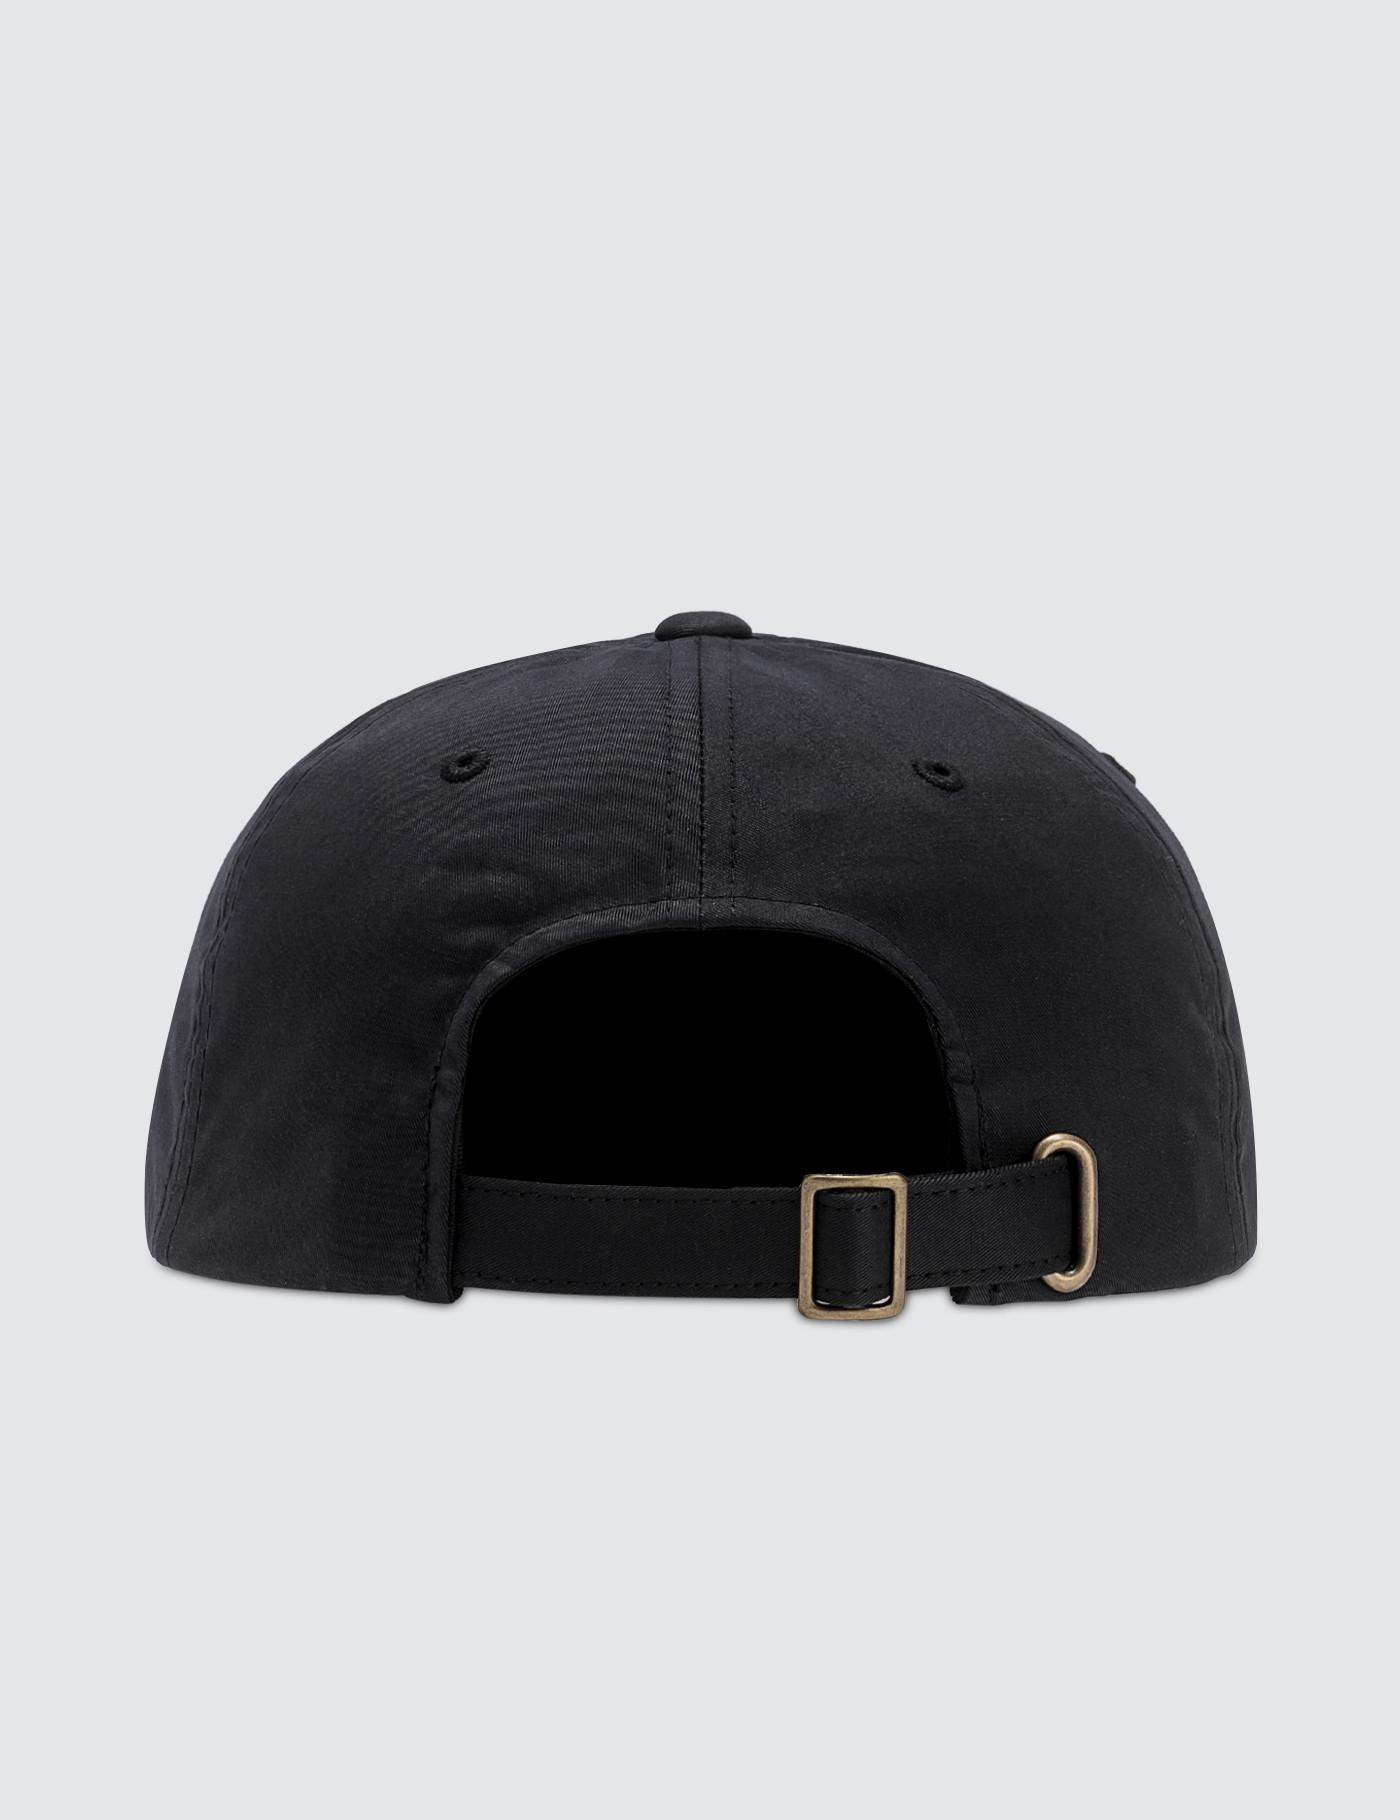 6a715975477 Stussy Stock Low Pro Cap in Black for Men - Save 42.22222222222222 ...